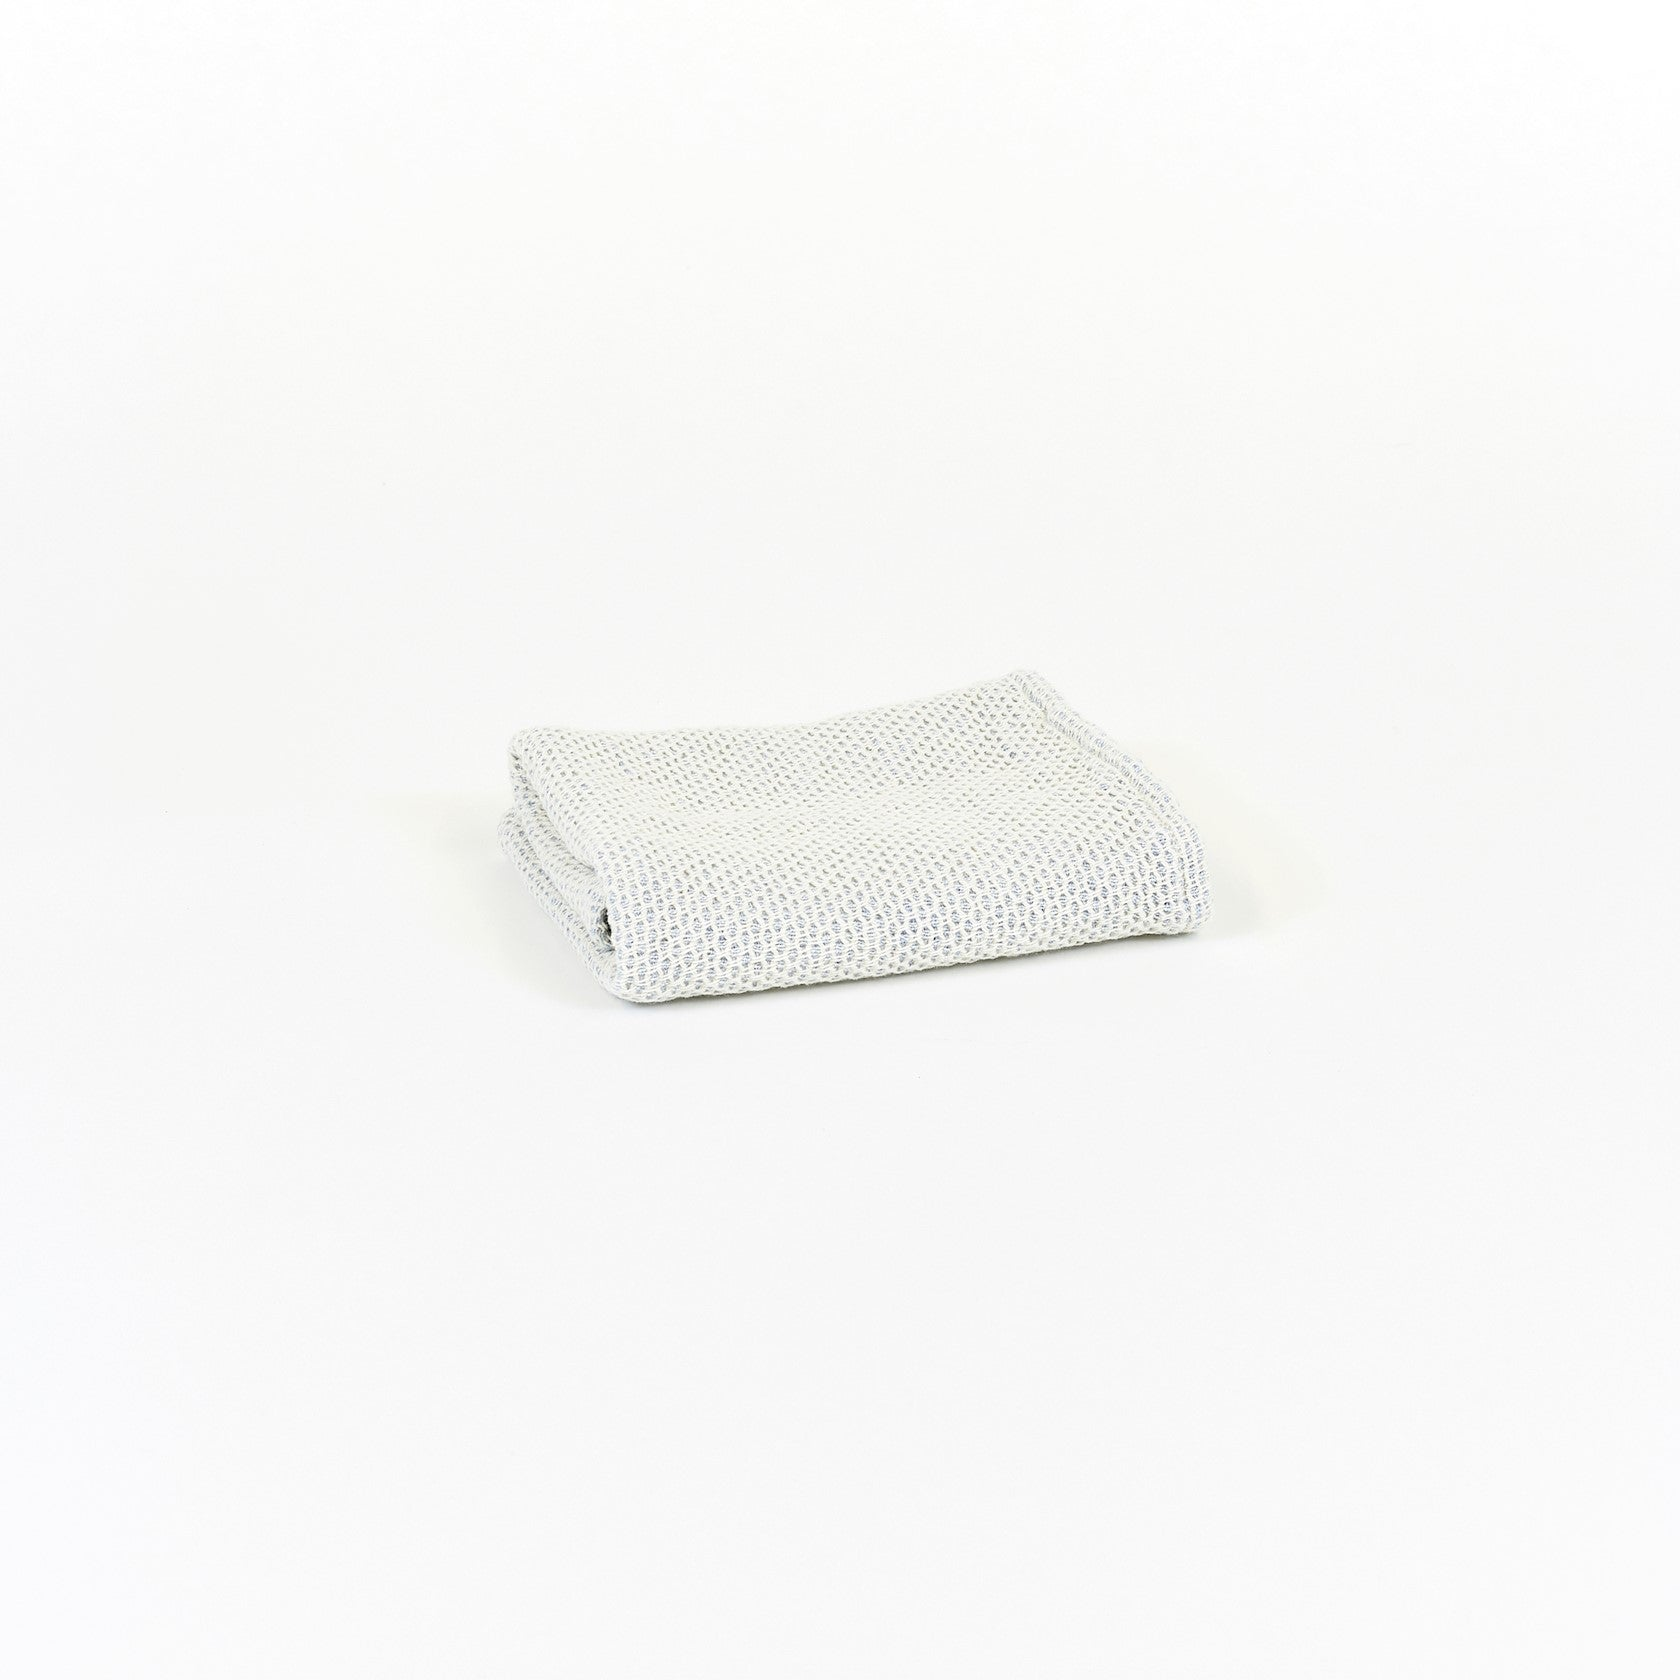 GUEST TOWELS 'HONEYCOMB' ( 4 x ) - Bath Linen - SCAPA HOME - SCAPA HOME OFFICIAL